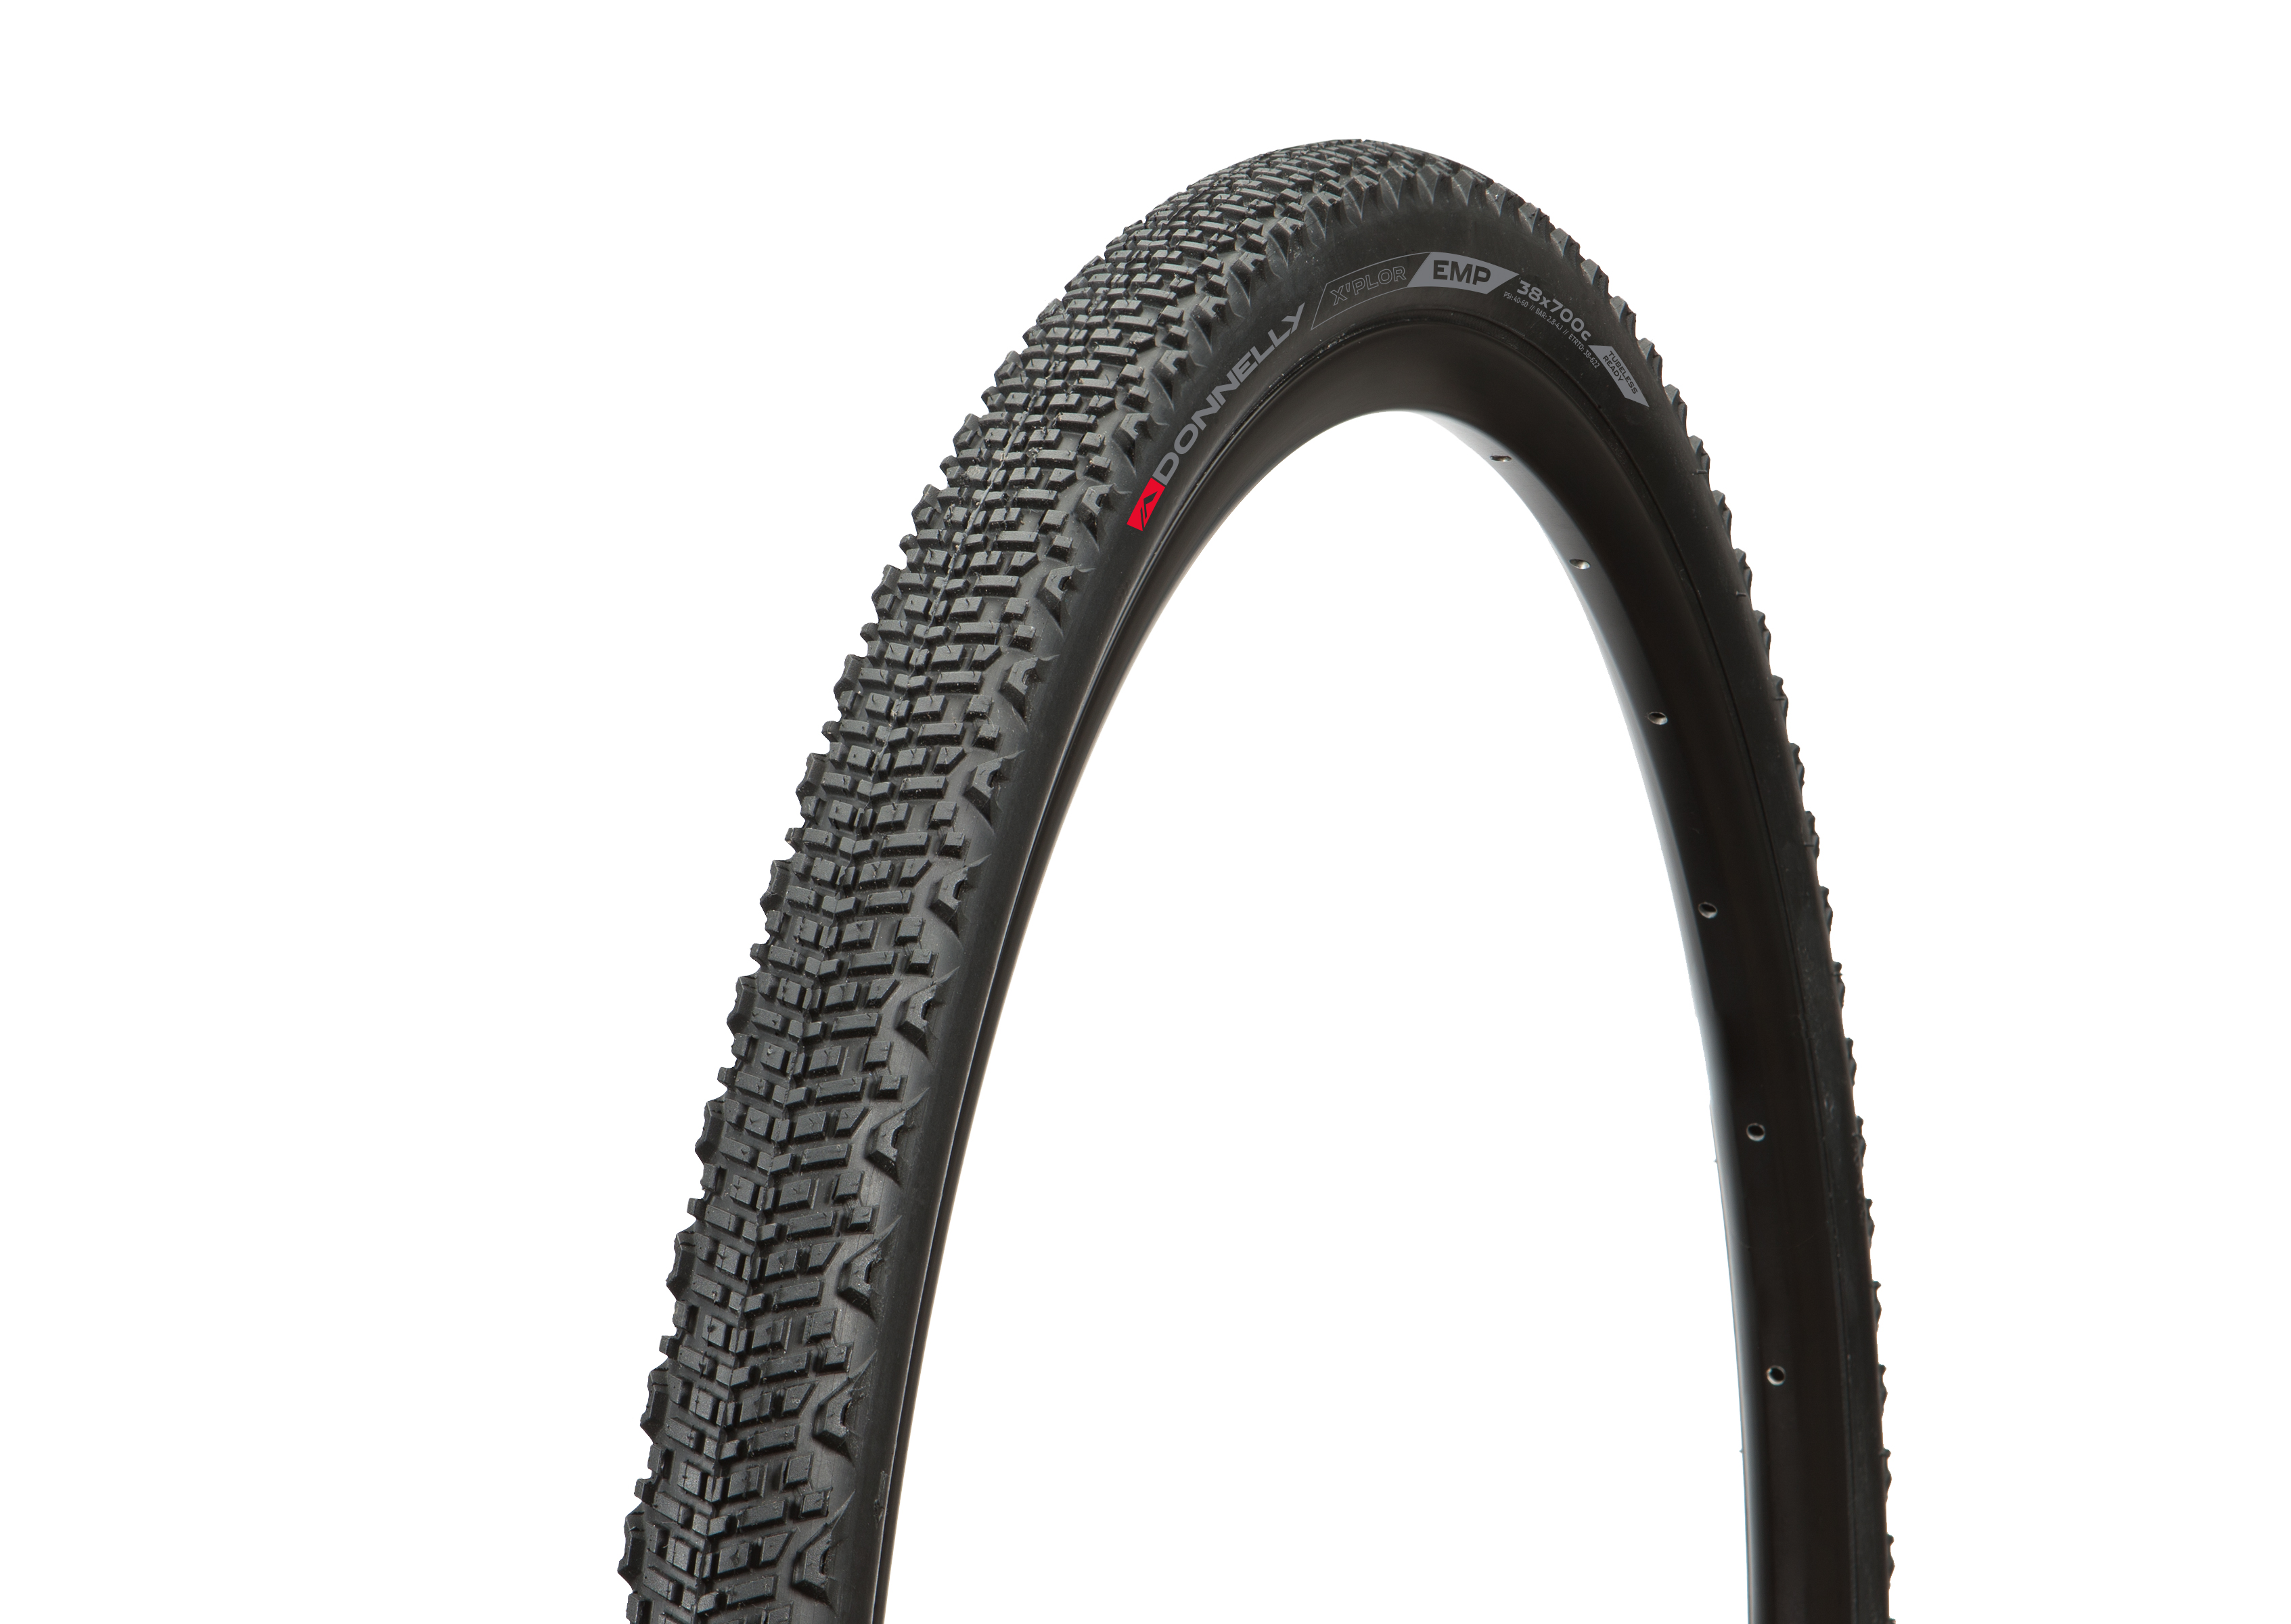 Donnelly EMP Mixed Terrain Adventure Gravel Bicycle Tires_MAIN